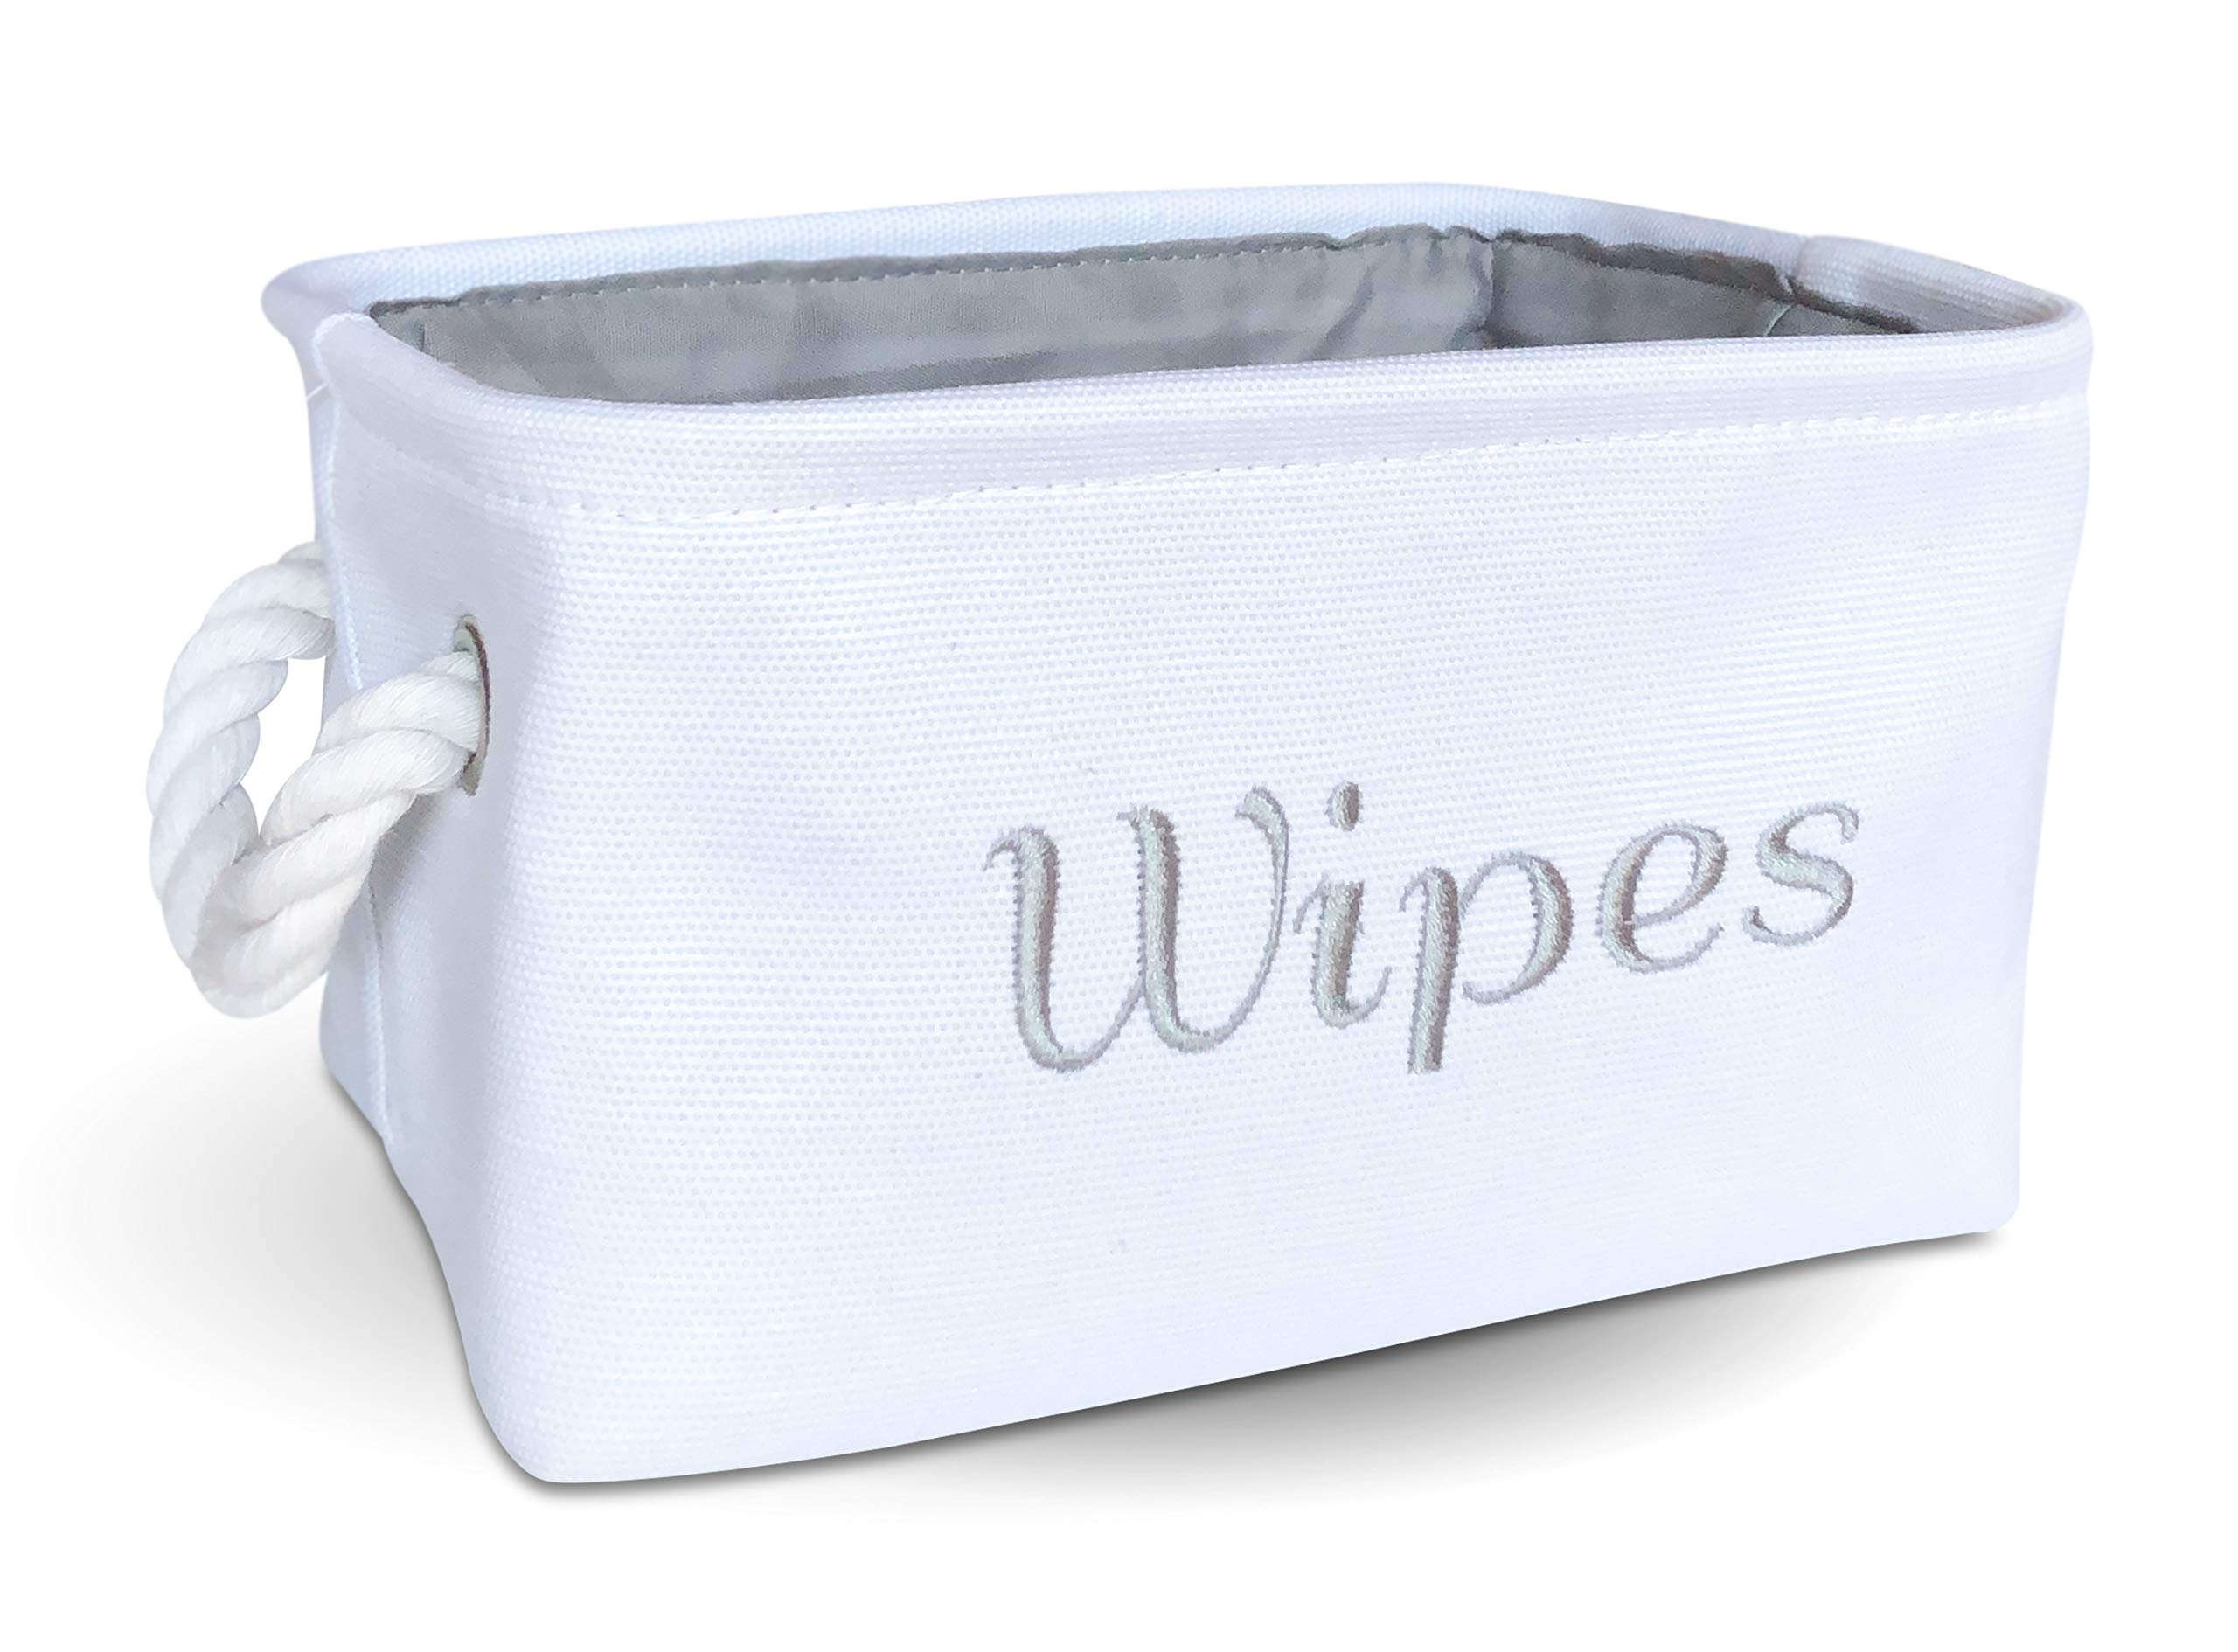 Wipe Holder, Storage & Organizer Bin for Nursery, Baby boy or Girl. White Canvas Fabric Decorative Basket with Gray Embroidering. by APPLE PIE ORDER